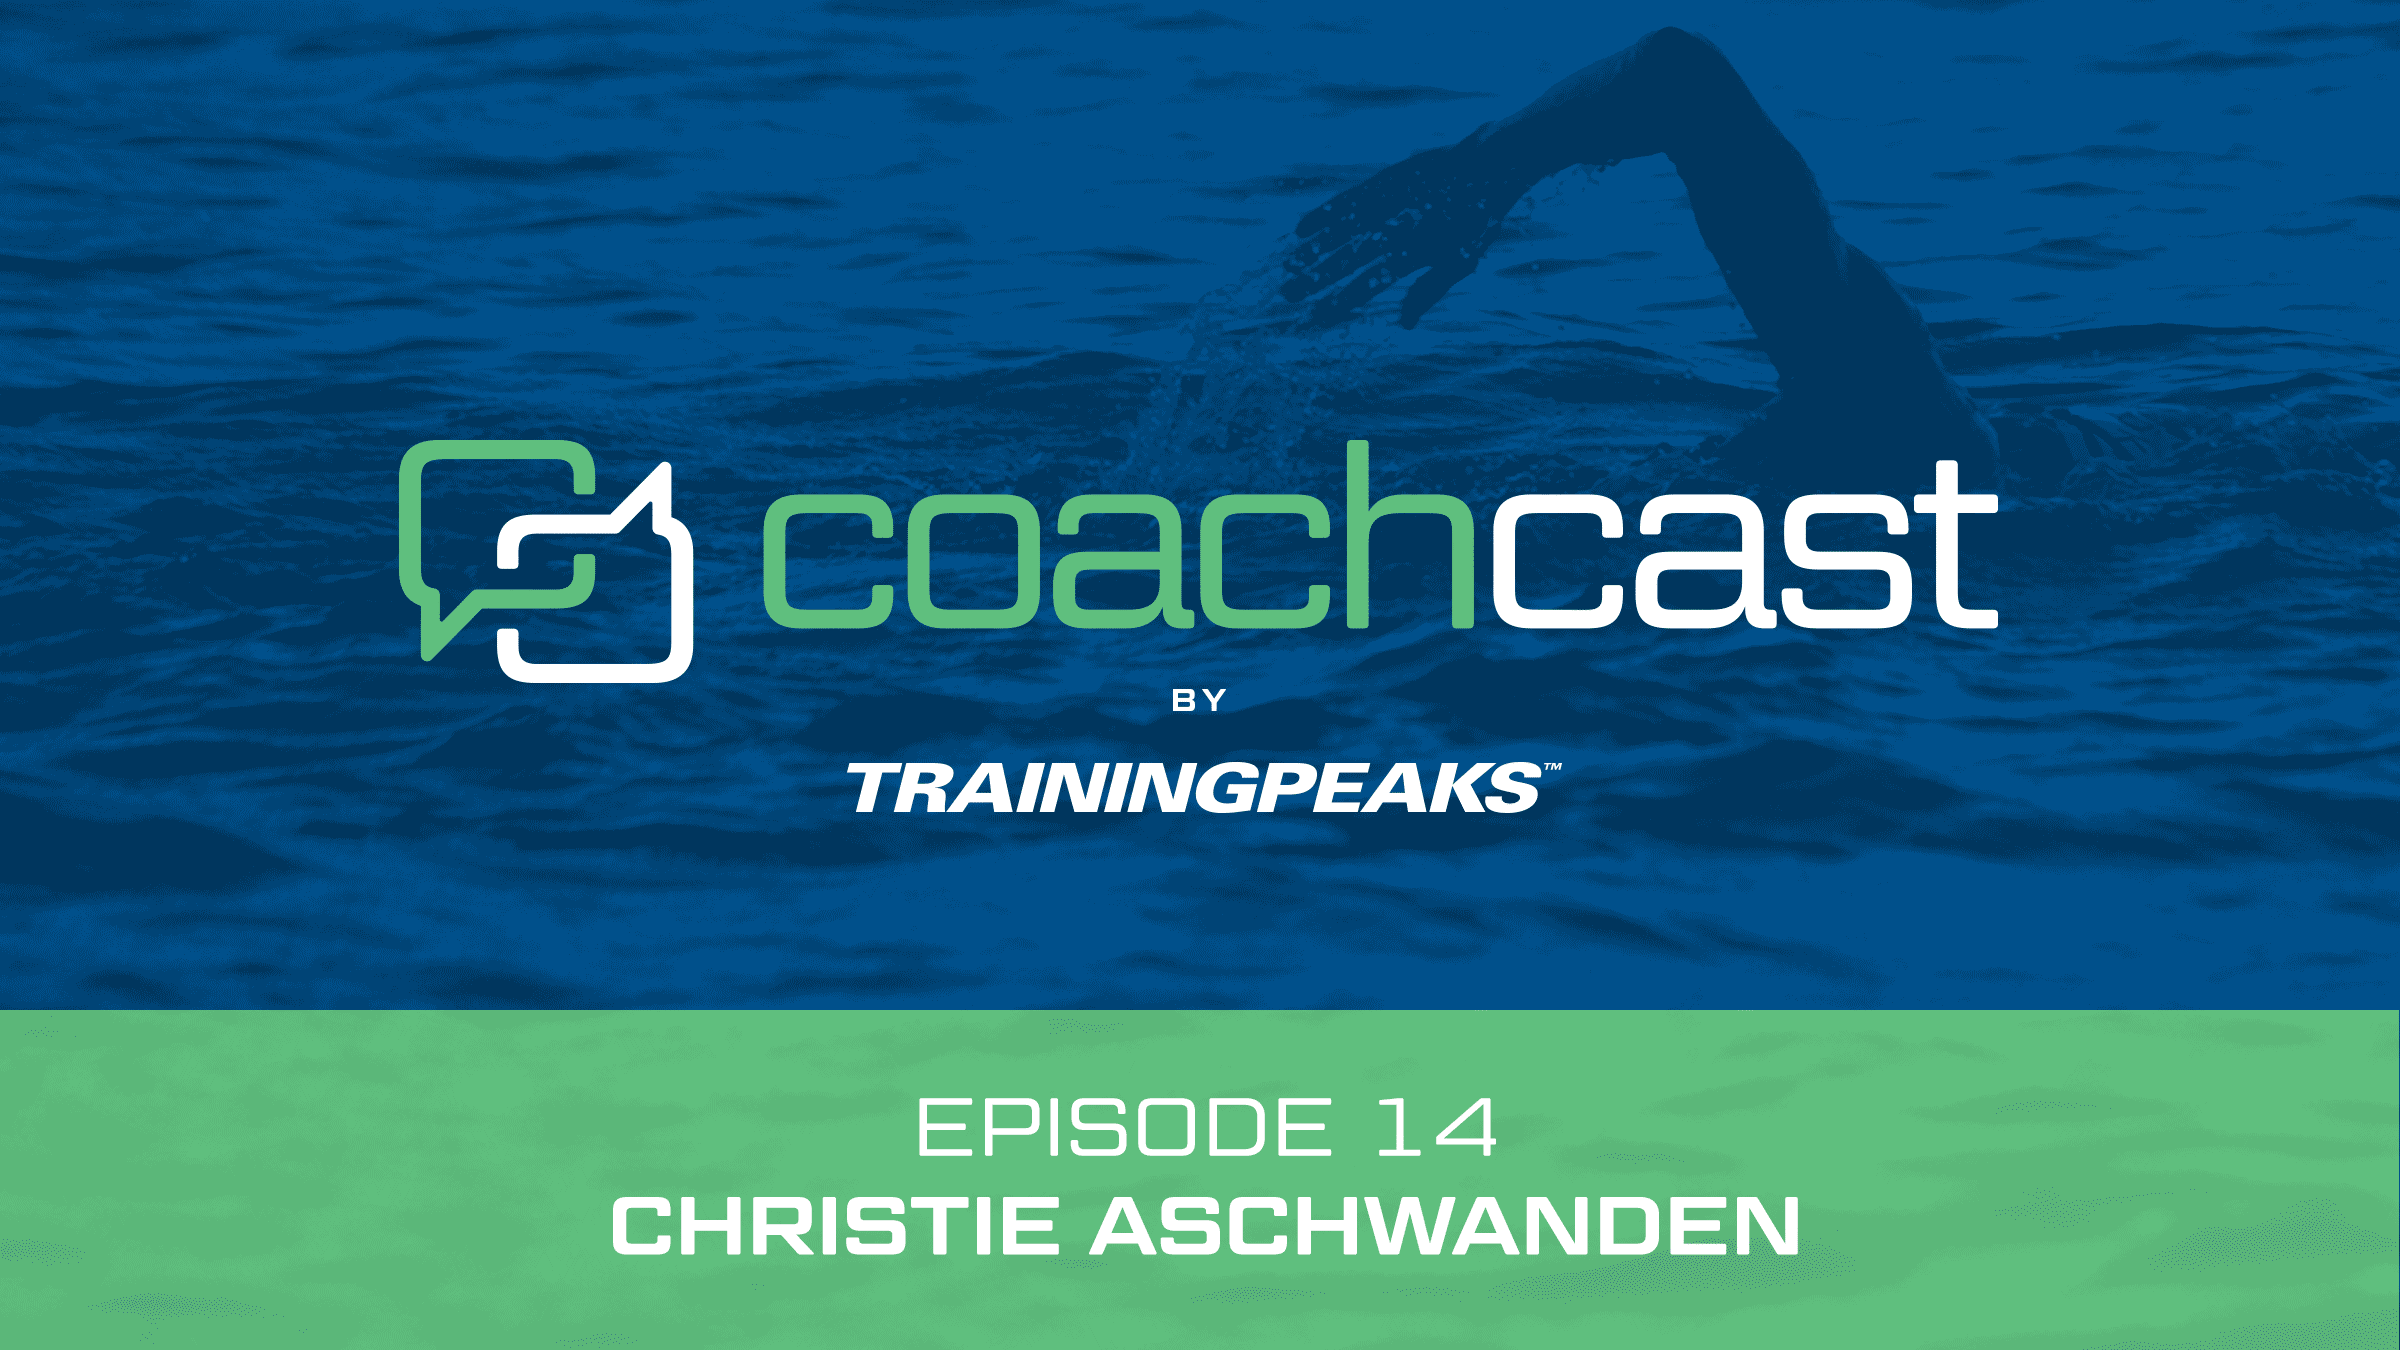 CoachCast: The Science of Recovery with Christie Aschwanden